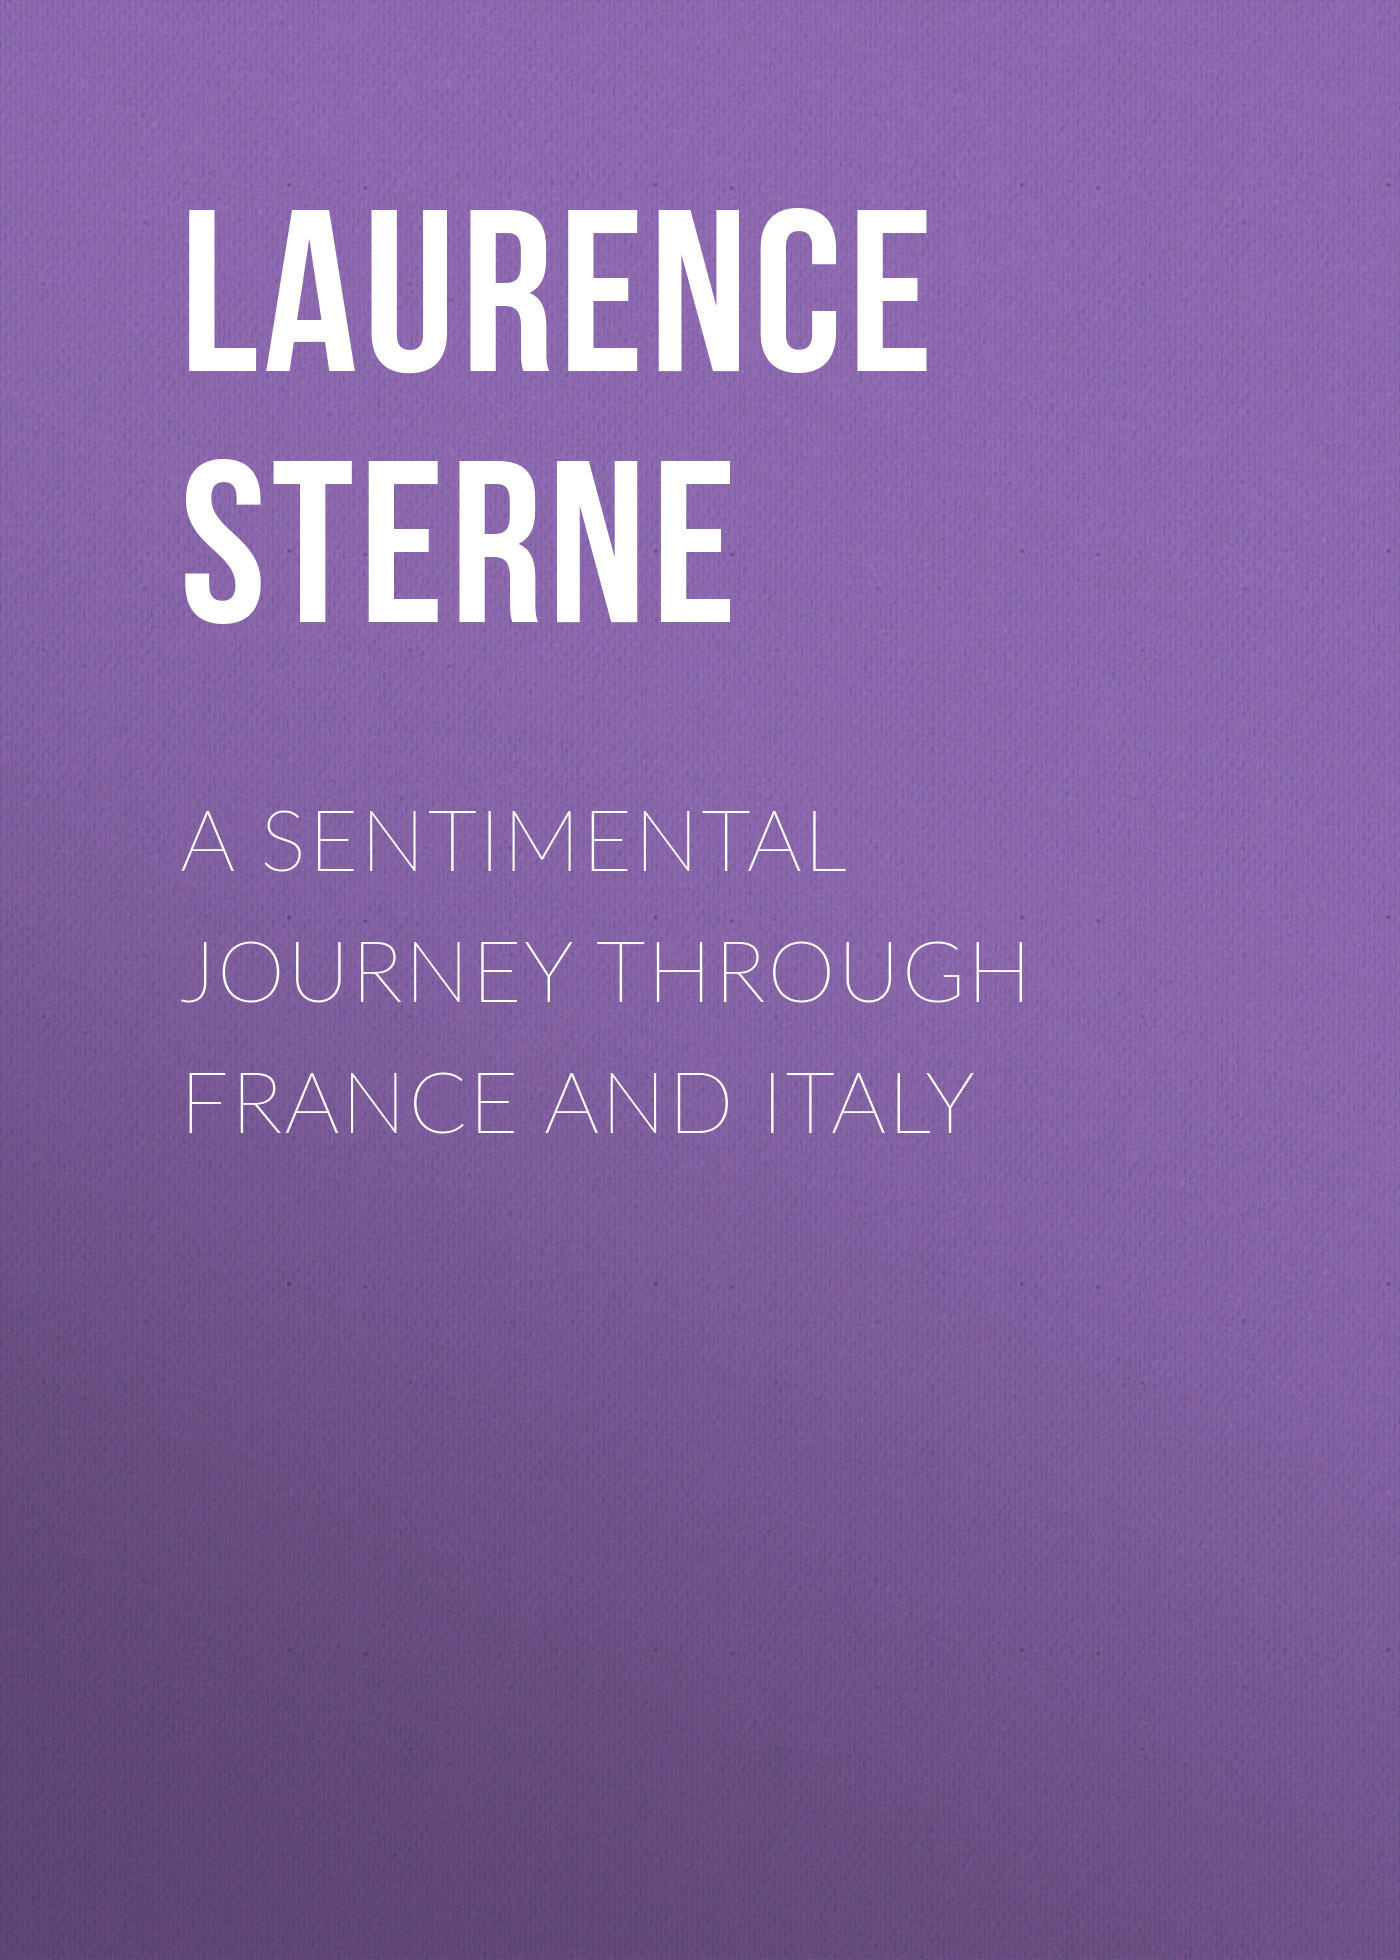 Laurence Sterne A Sentimental Journey Through France and Italy кастрюля со съемными ручками 4 9 л taller tr 4232